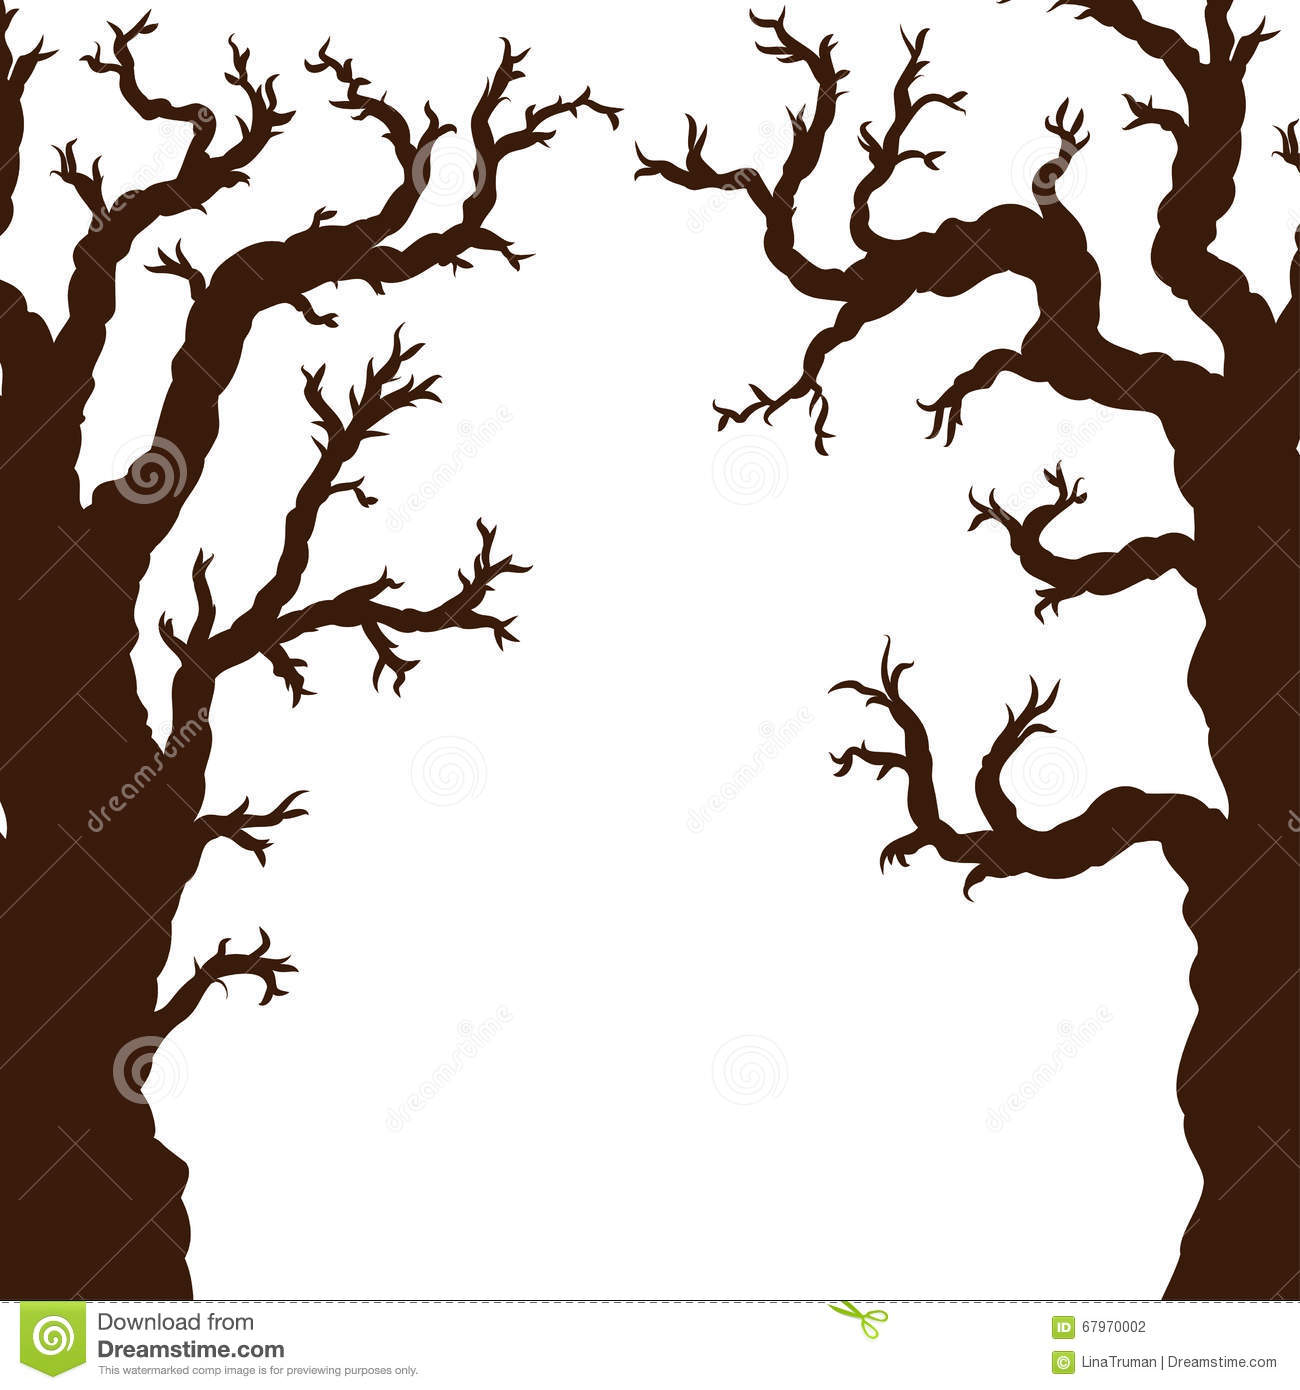 hight resolution of silhouettes of halloween trees bare spooky scary halloween tree